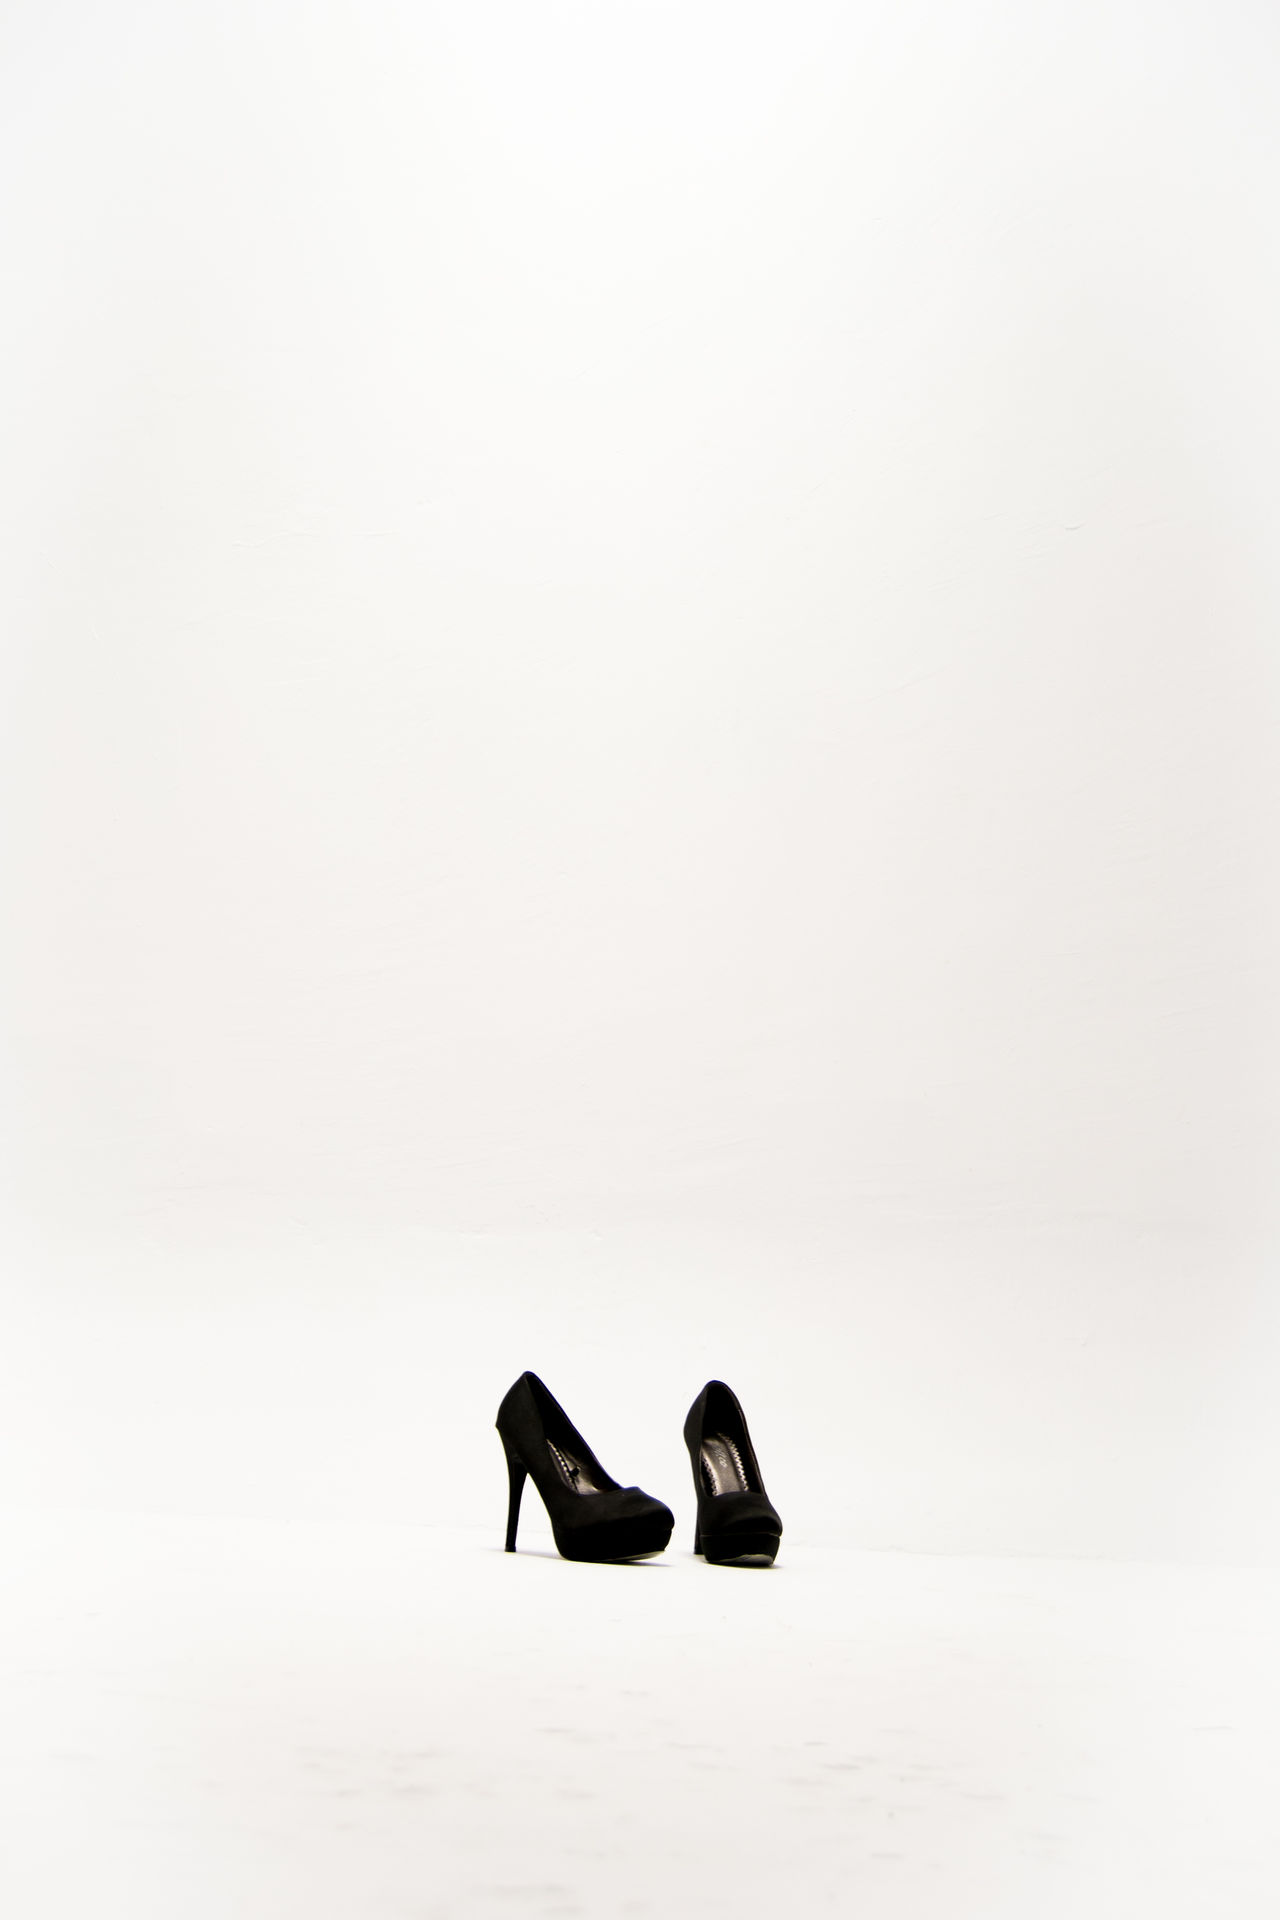 Beautiful stock photos of akt, Copy Space, High Heels, Man Made Object, No People